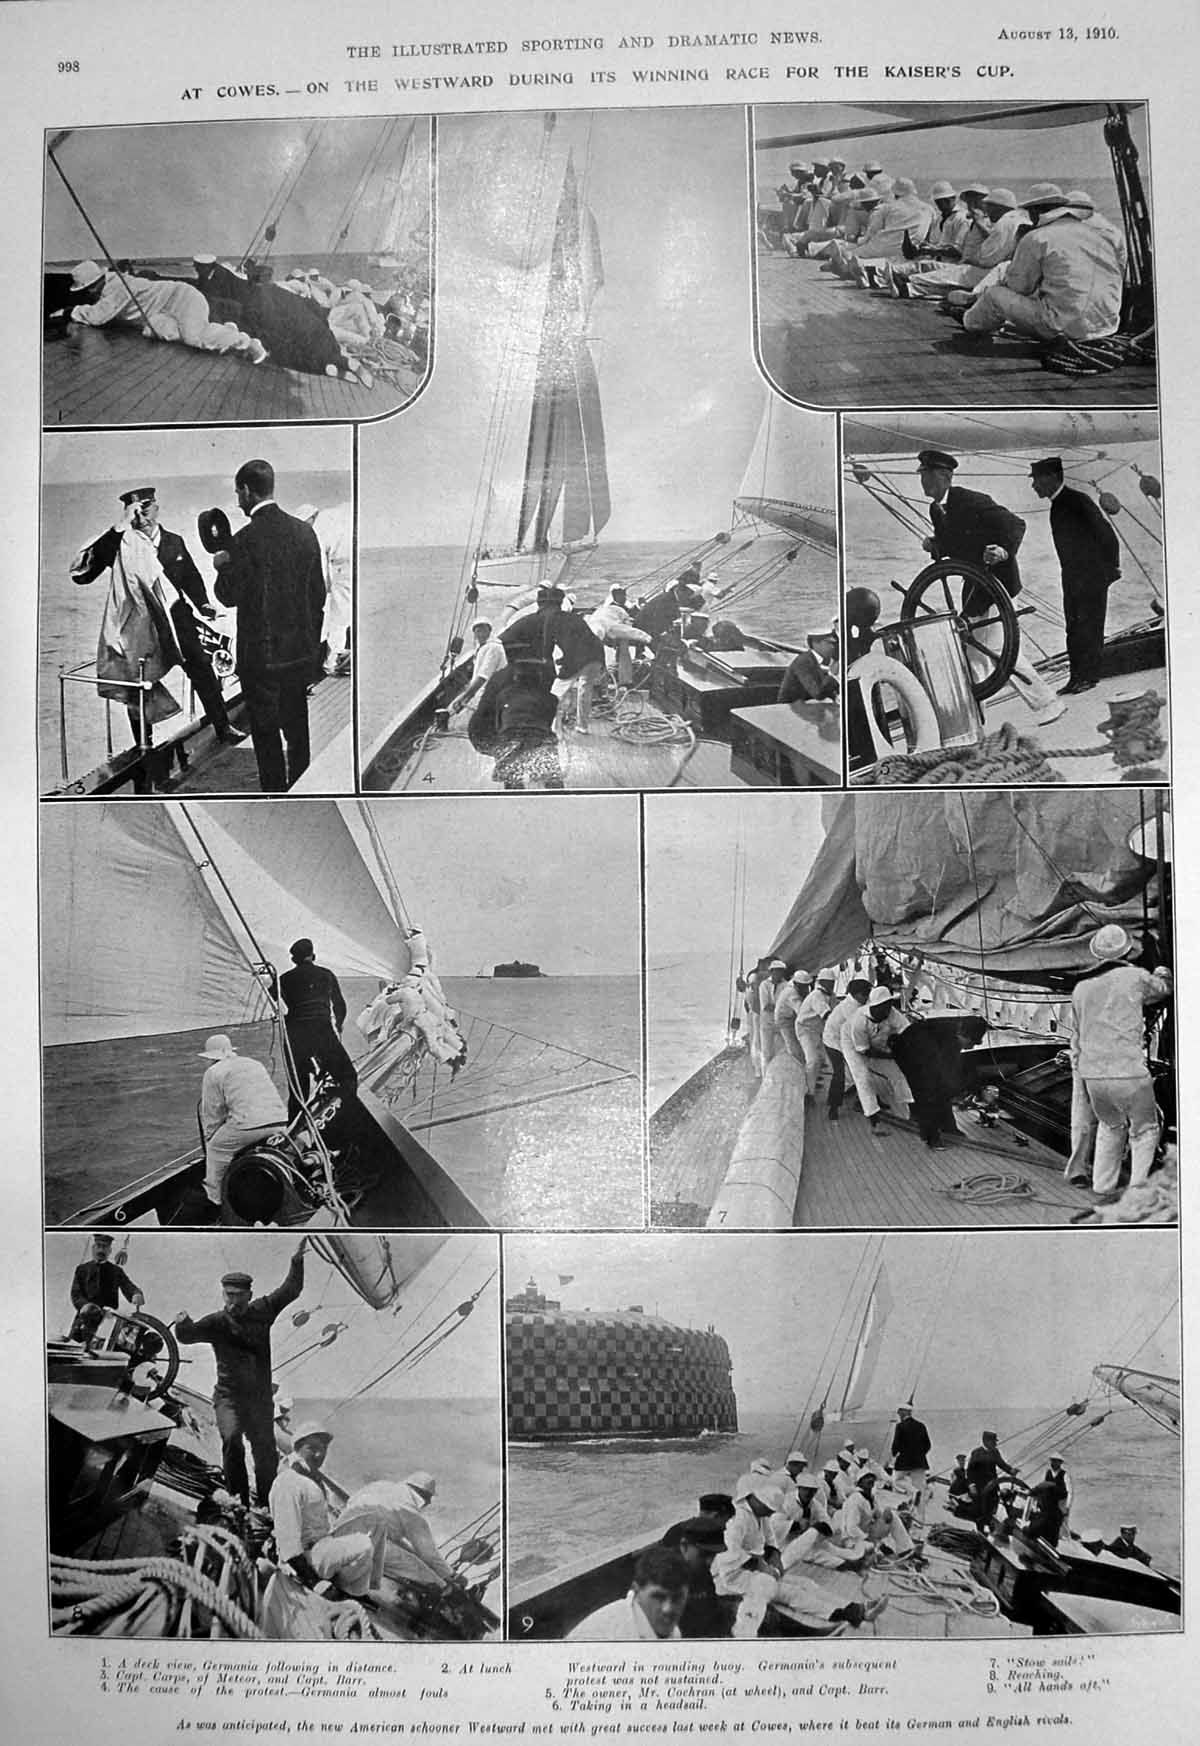 Old-Print-Cowes-Kaisers-Cup-Tring-Show-Horse-Hospital-Golfers-Ostend-1910-20th